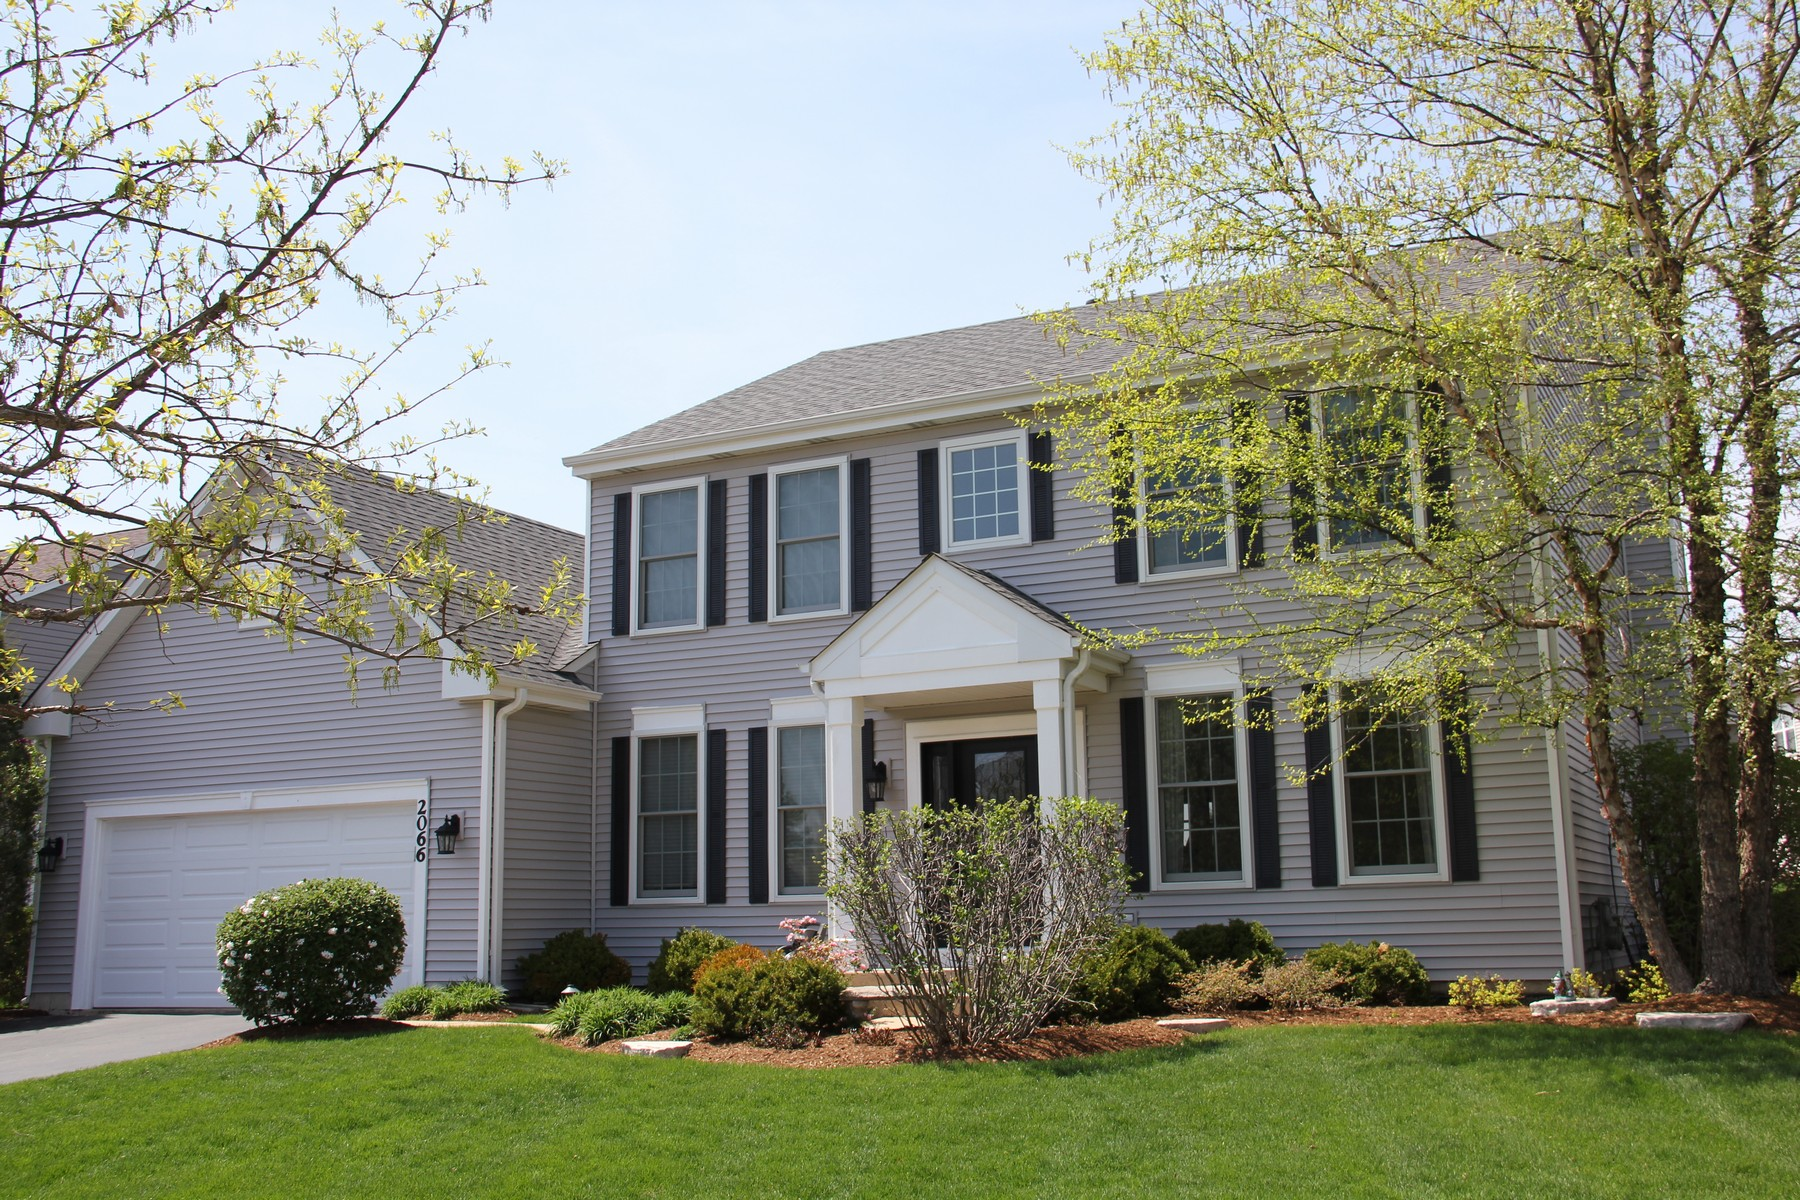 Single Family Home for Sale at Meticulously maintained five bedroom home 2066 Cheshire Drive Hoffman, Illinois 60192 United States